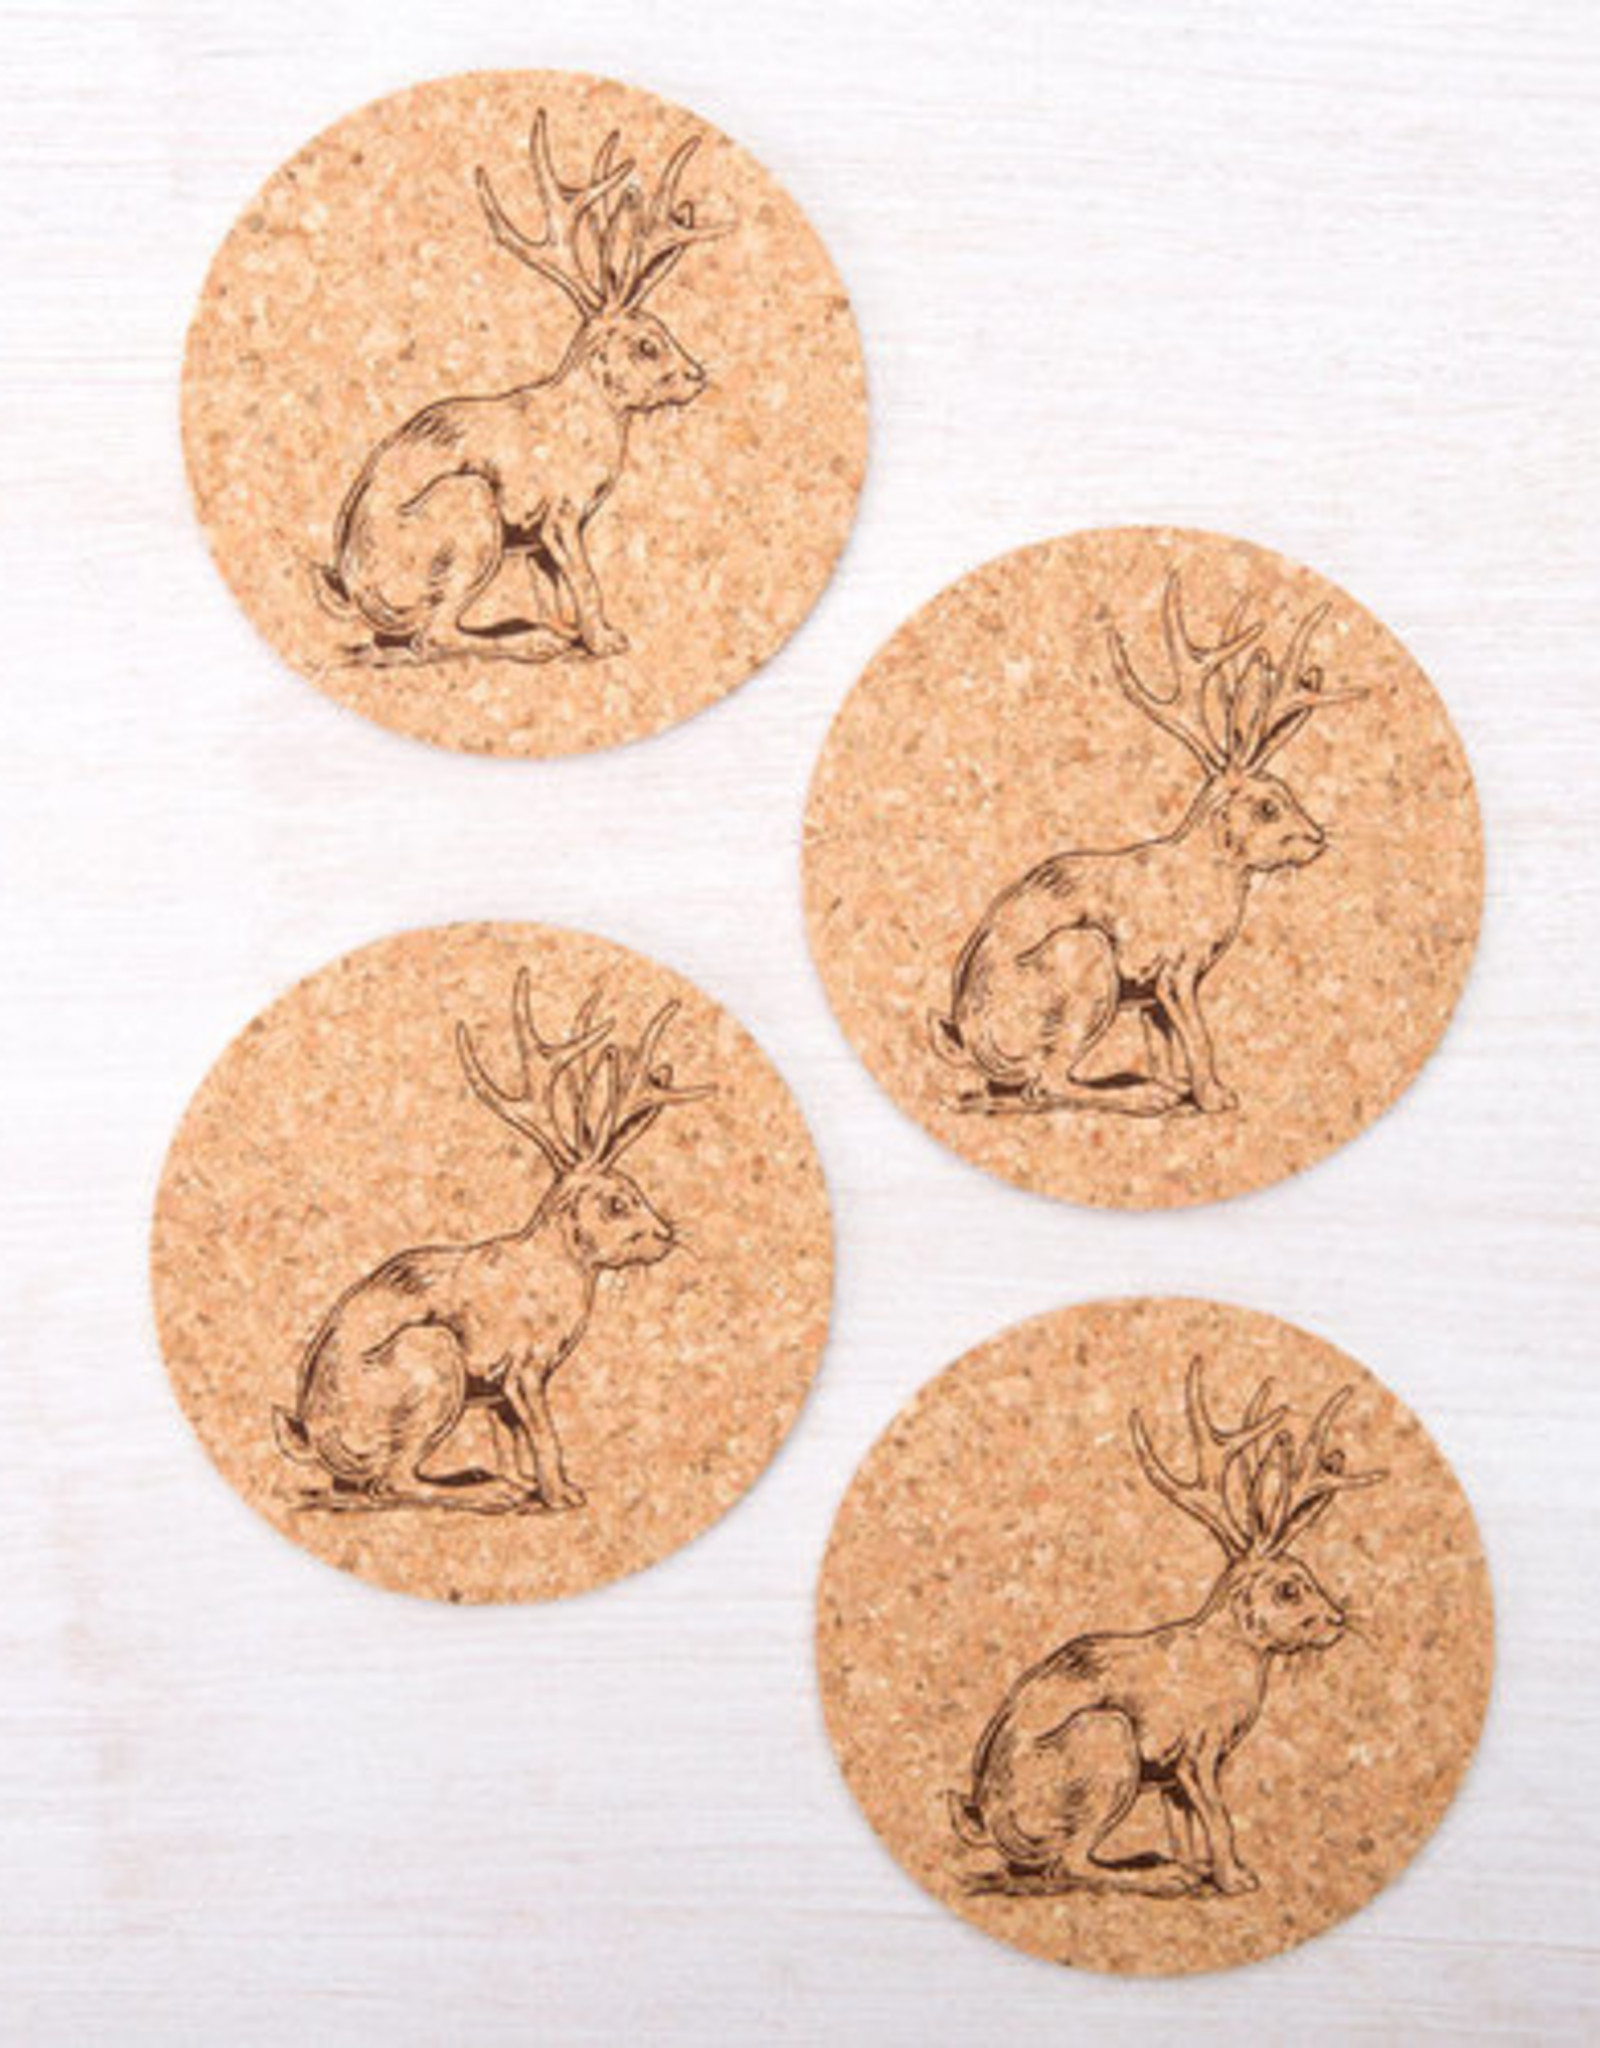 Counter Couture Assorted Cork Coaster Sets by Counter Couture